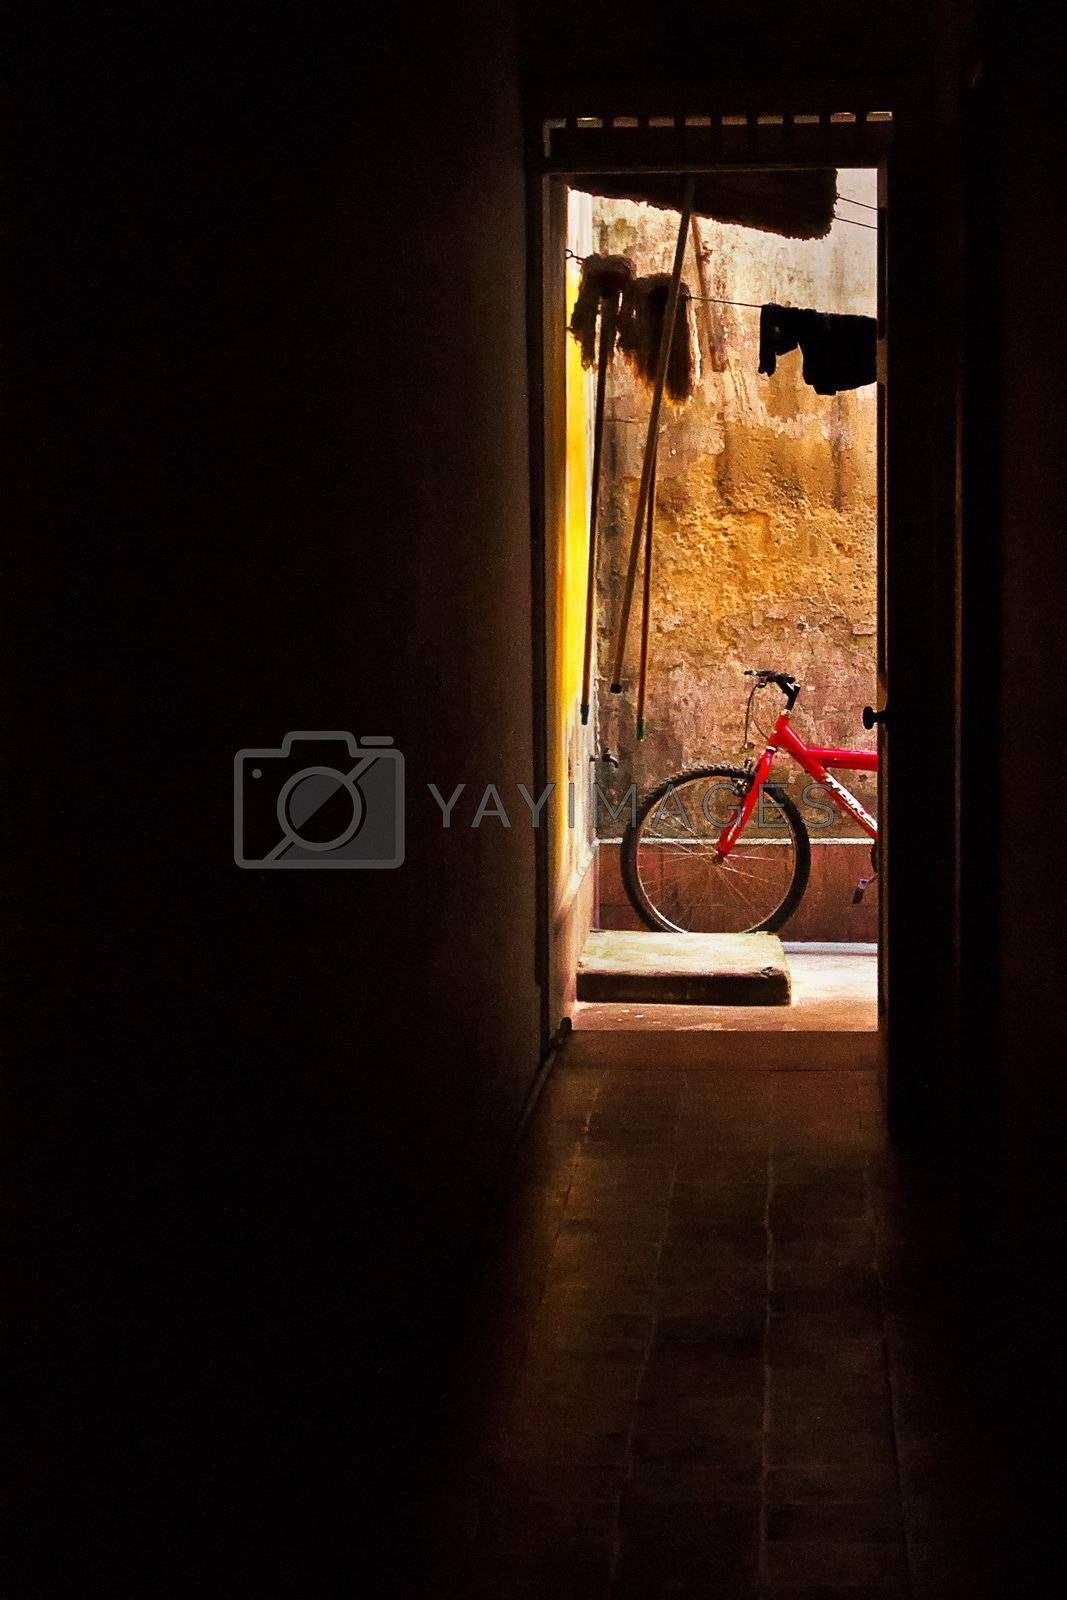 A red bicycle at the end of a hall next to a yellow wall.